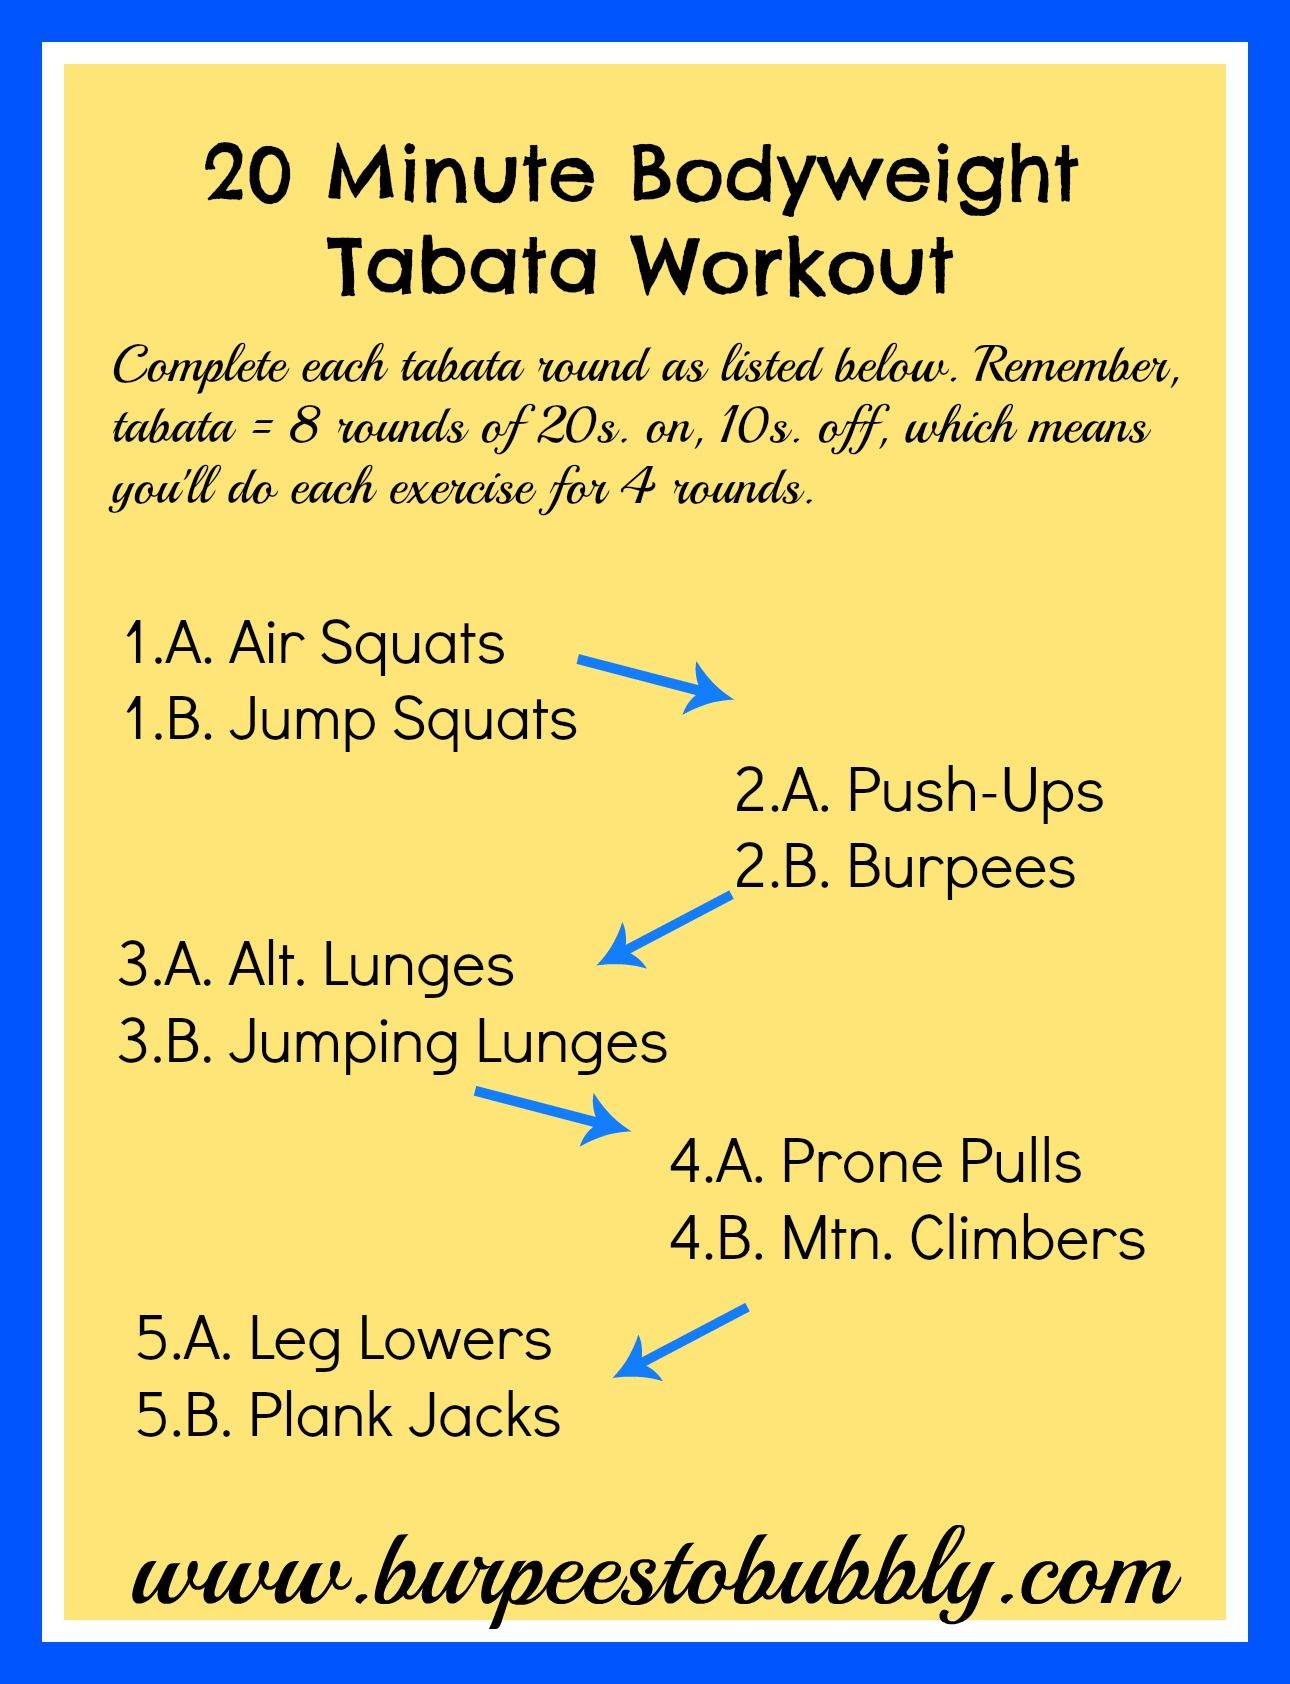 20 Minute At Home Cardio Workout Wednesday Workout 20 Minute Bodyweight Tabata Workout